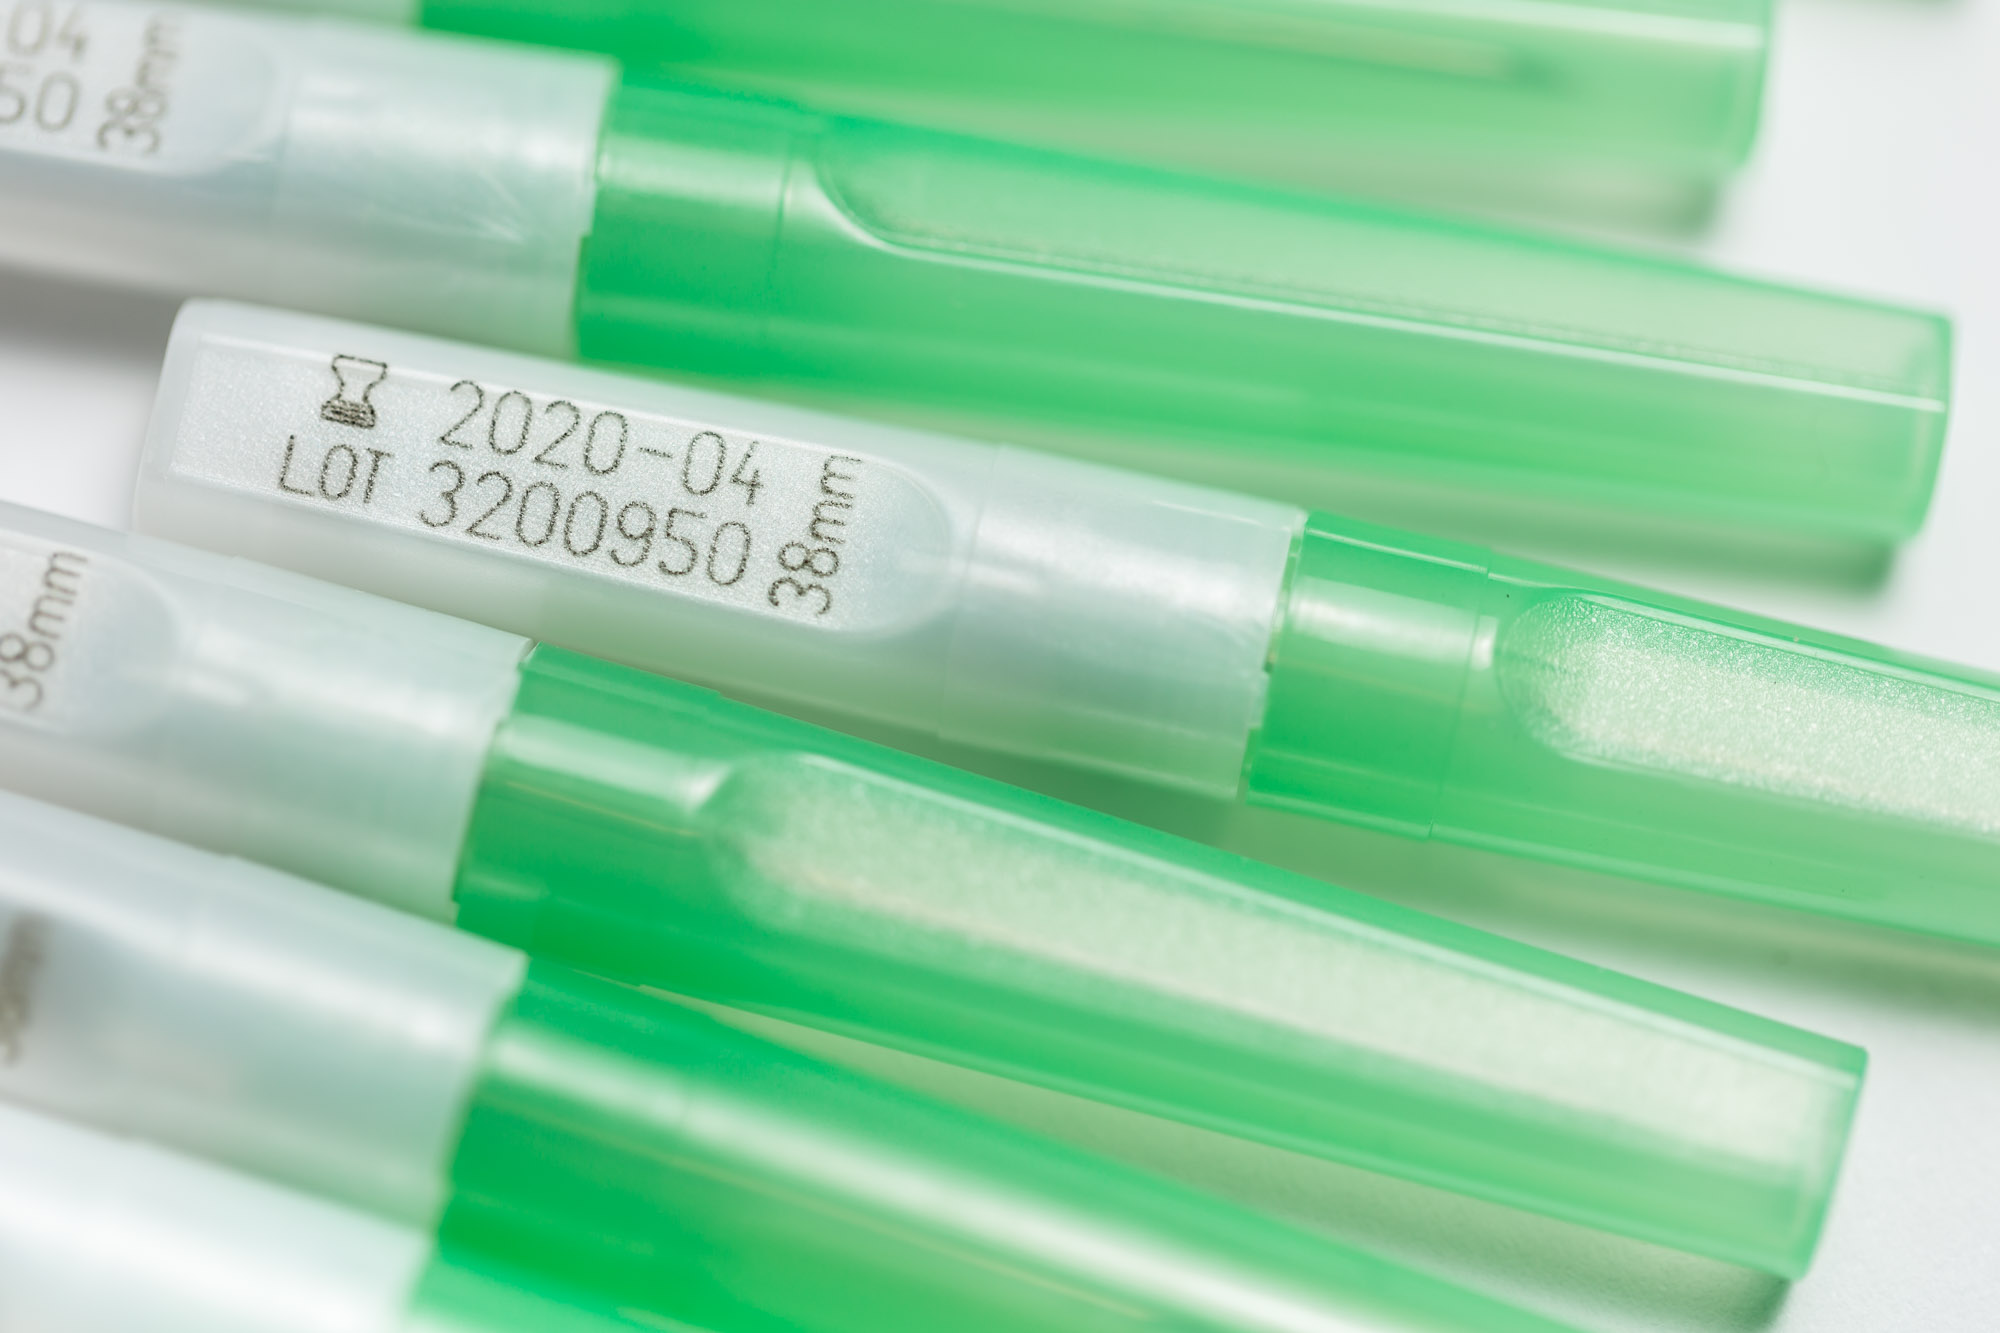 Laser marked plastic syringe covers